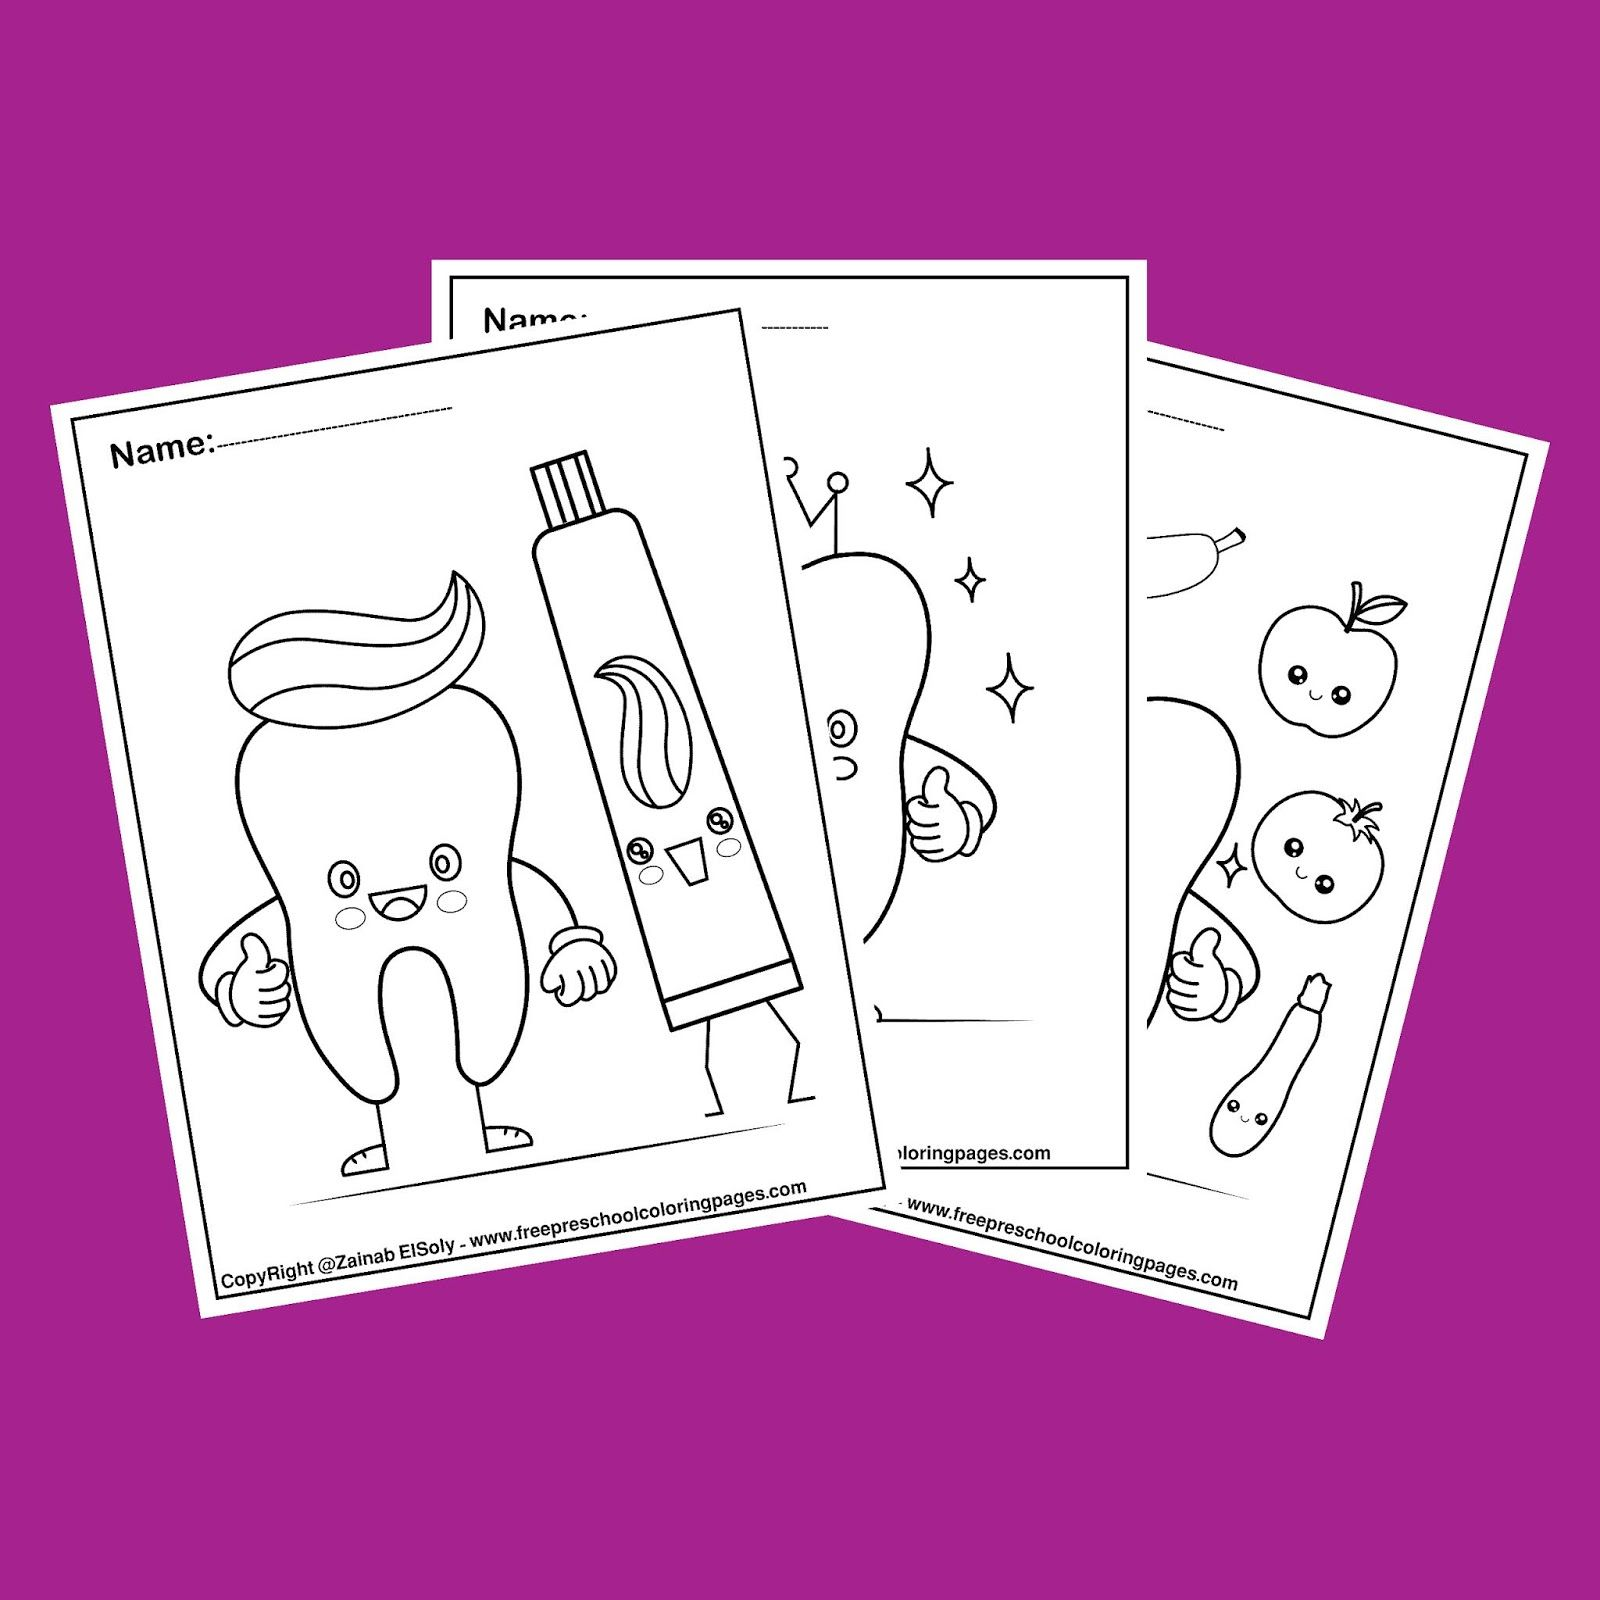 All Free Printable Preschool Coloring Pages In